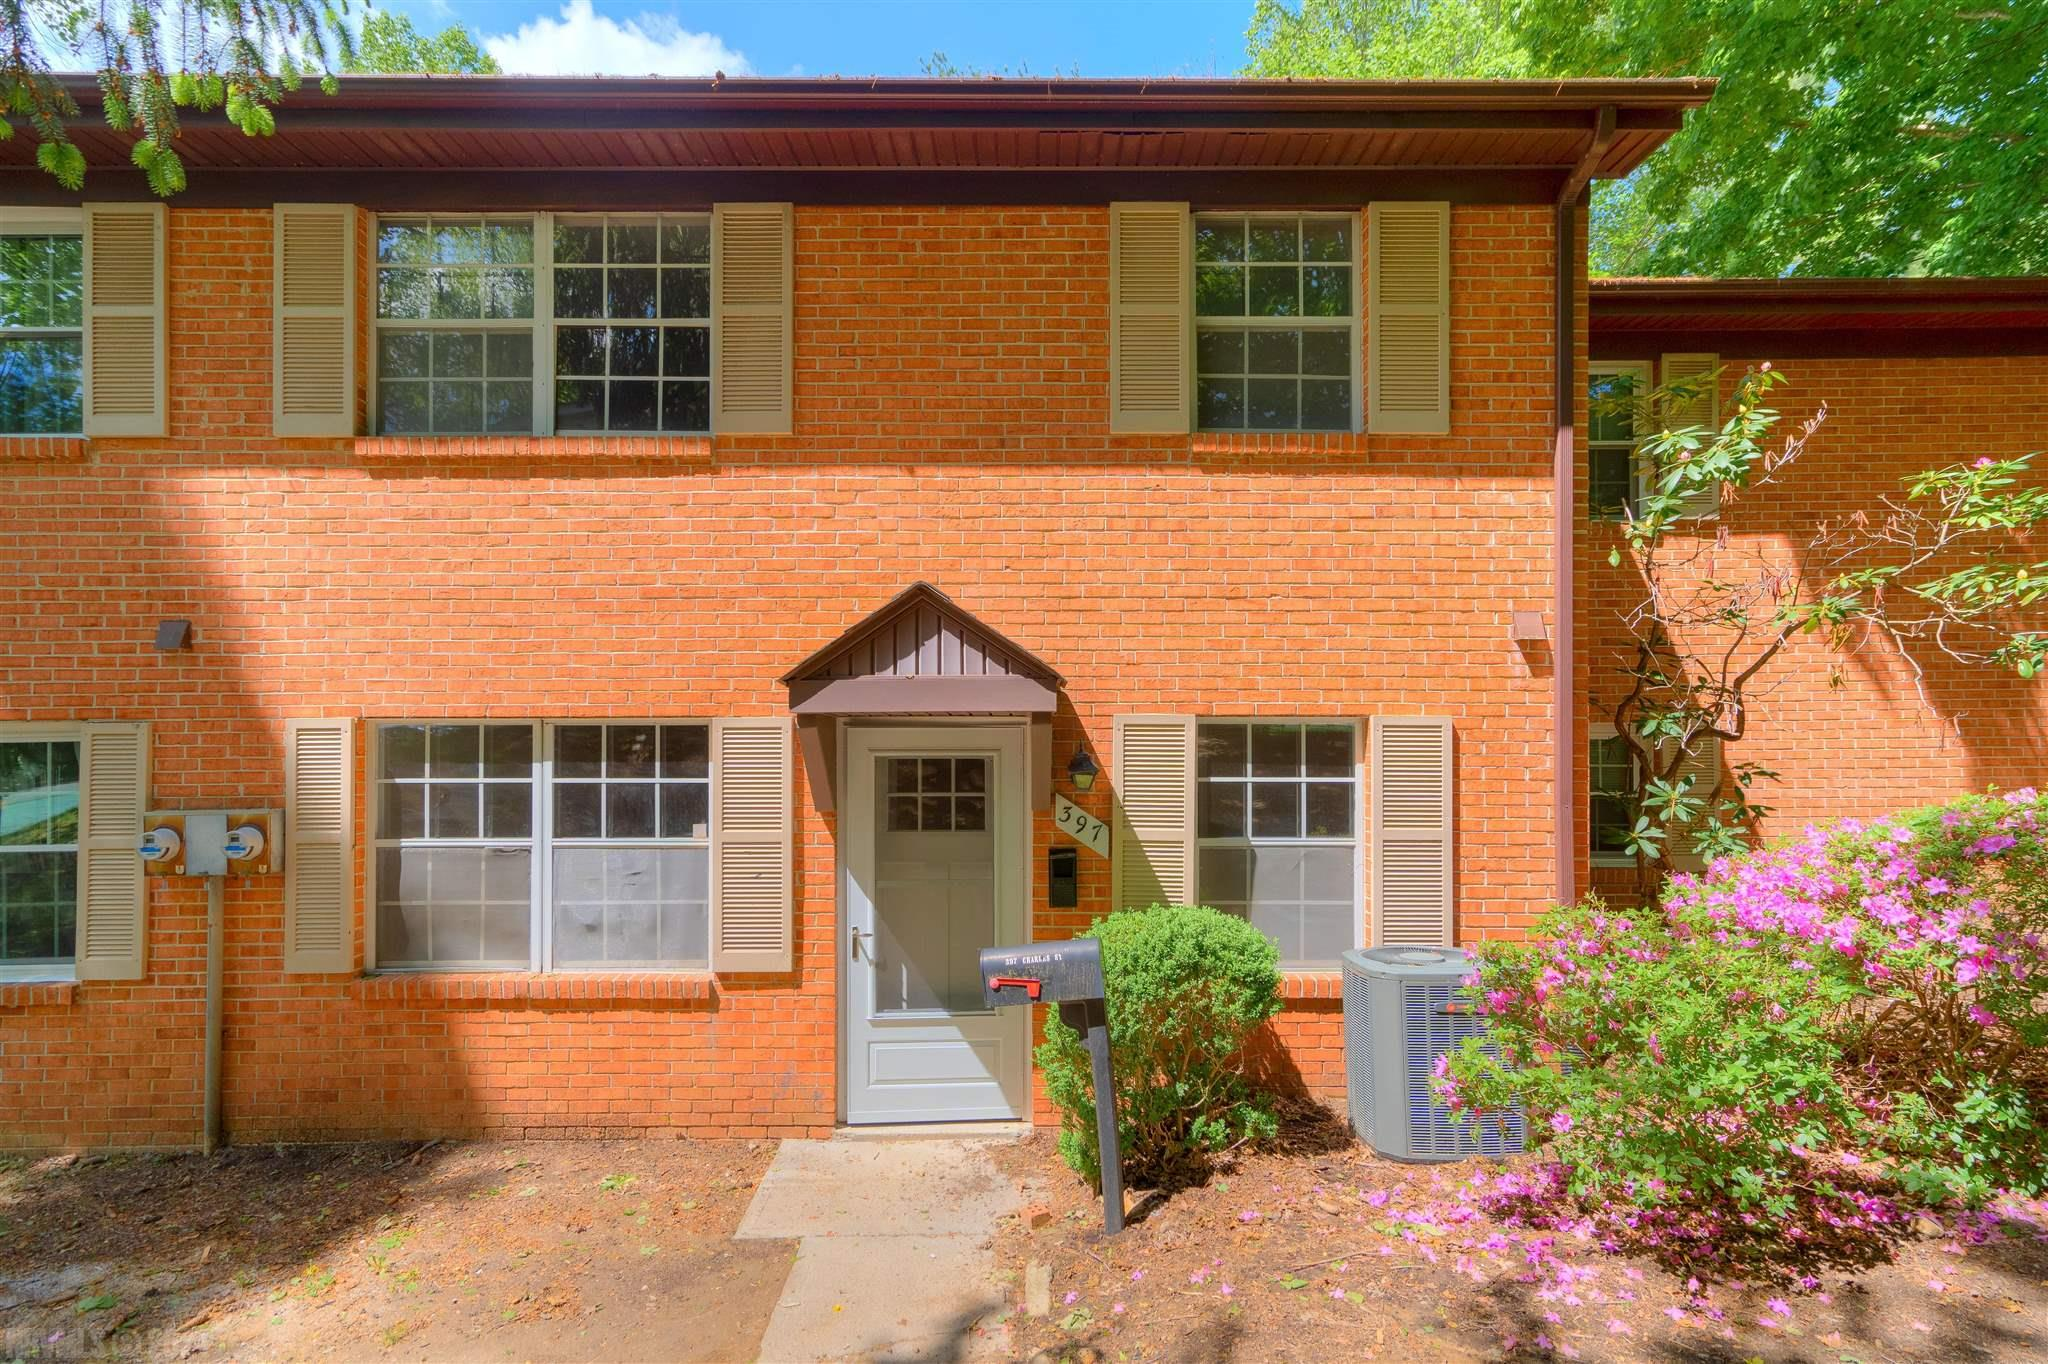 Wonderful opportunity to own a Blacksburg condo, within walking distance of downtown and the First & Main shopping district, in completely renovated condition! The owner has remodeled the entire home in 2021, making this completely turnkey for your first home, or incoming student. Entering the new front door you'll find a large living room to your left, with a dining room to your right. The kitchen was gutted and redone, with Shaker-style cabinets, new countertops and fixtures, and appliances. Luxury vinyl plank floors throughout the main are maintenance-free, and the new stacked washer-dryer fits perfectly in the utility closet. New carpet on the stairs, and upstairs in both bedrooms, and the bathroom was completely redone, as well. Large closets in the bedrooms were reworked for a more modern trim set. Less than 1/2 mile walk to Main Street, or utilize the public transportation that is right outside your front door. HOA fee includes water/sewer/trash, and a neighborhood pool!